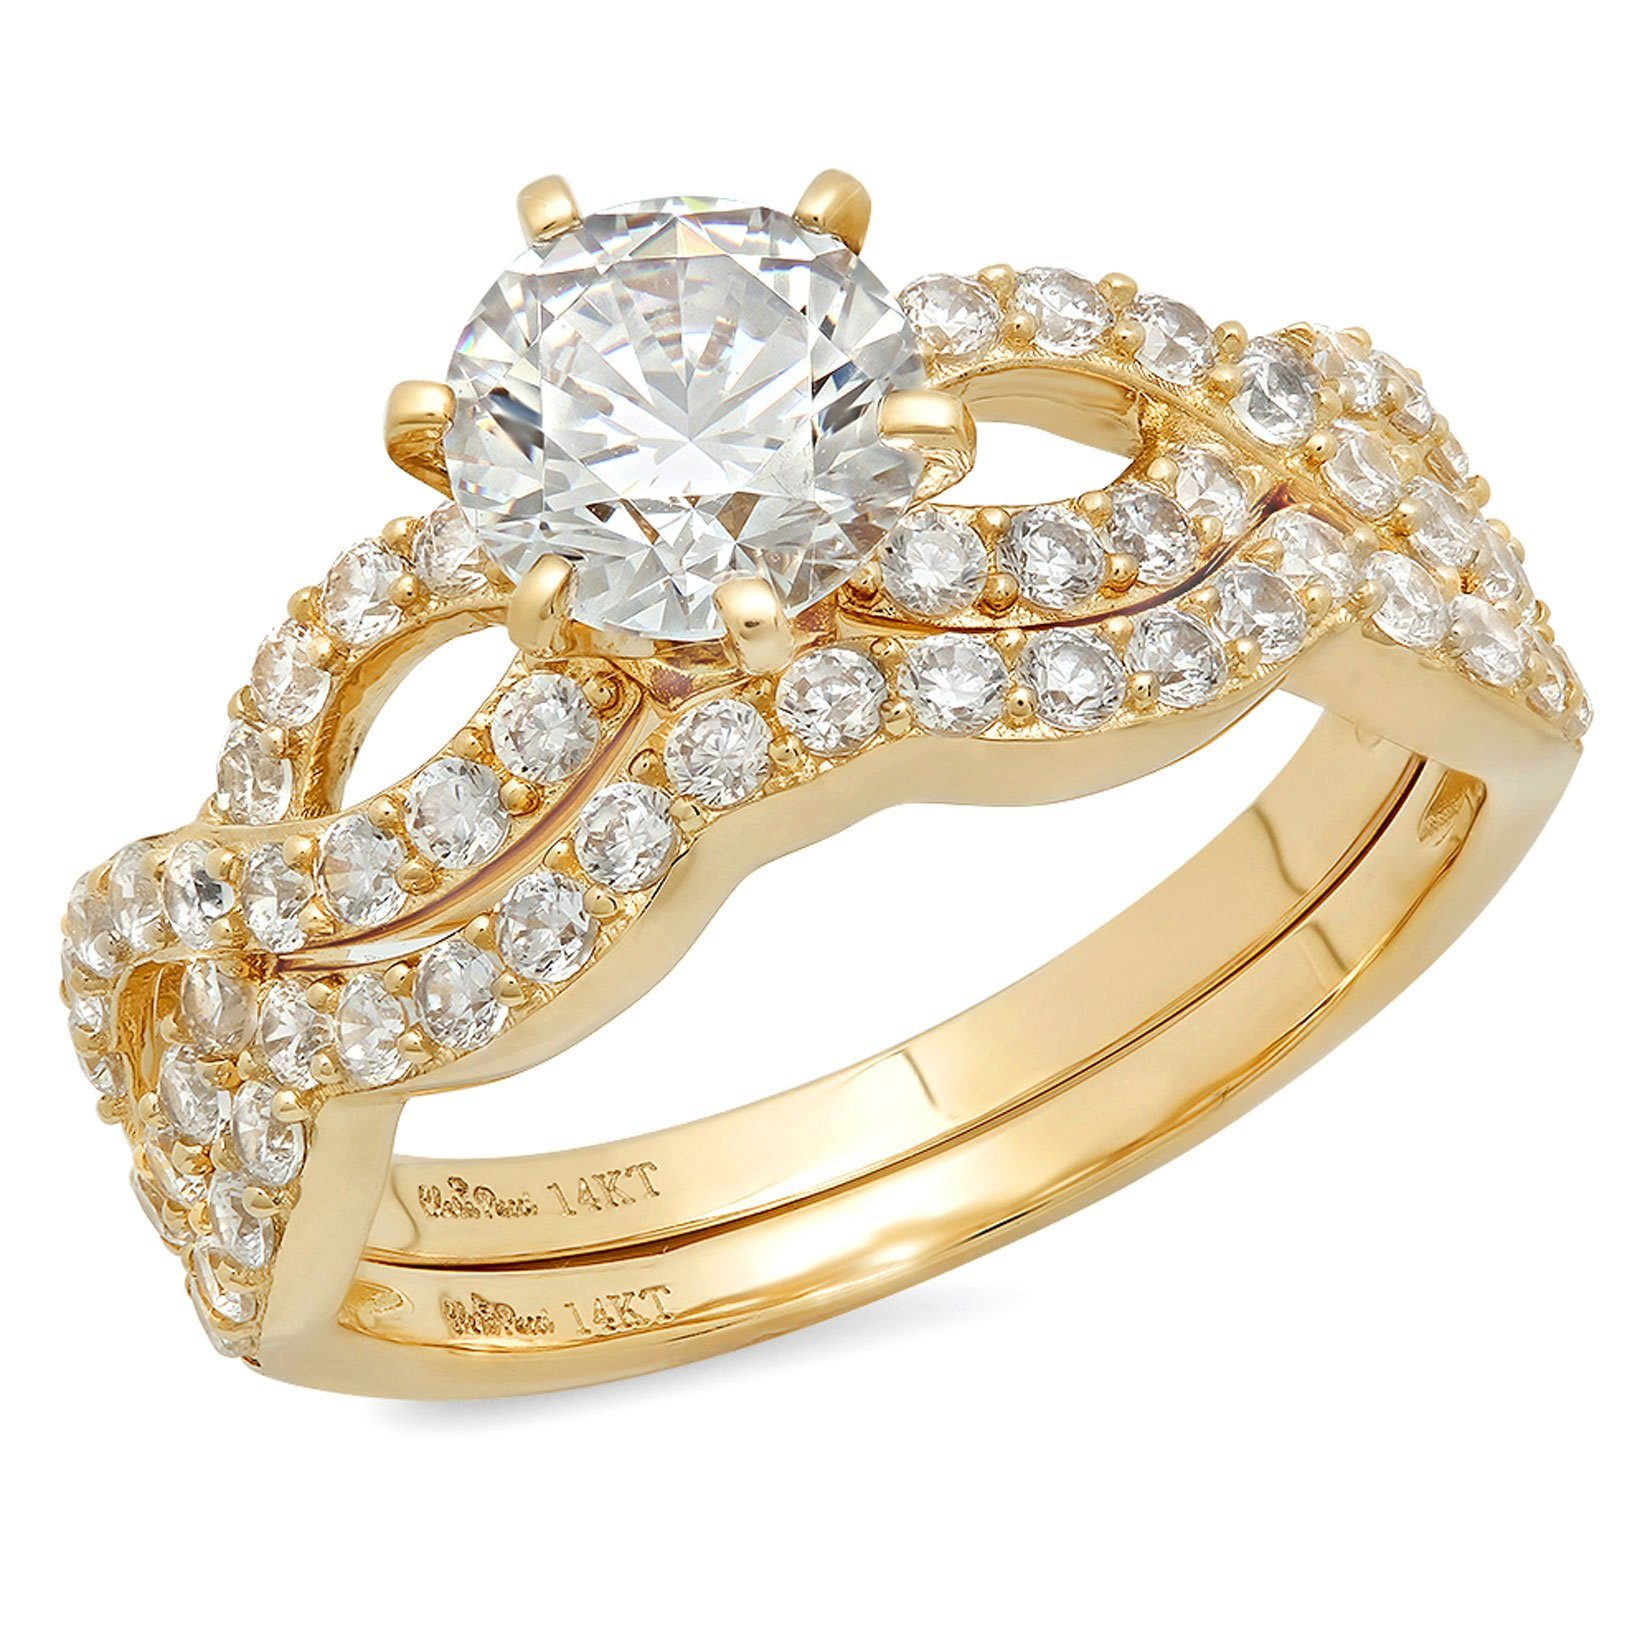 Clara Pucci 1.4 CT Round Cut Pave Halo Bridal Engagement Wedding Ring band set 14k Yellow Gold, Size 6.5